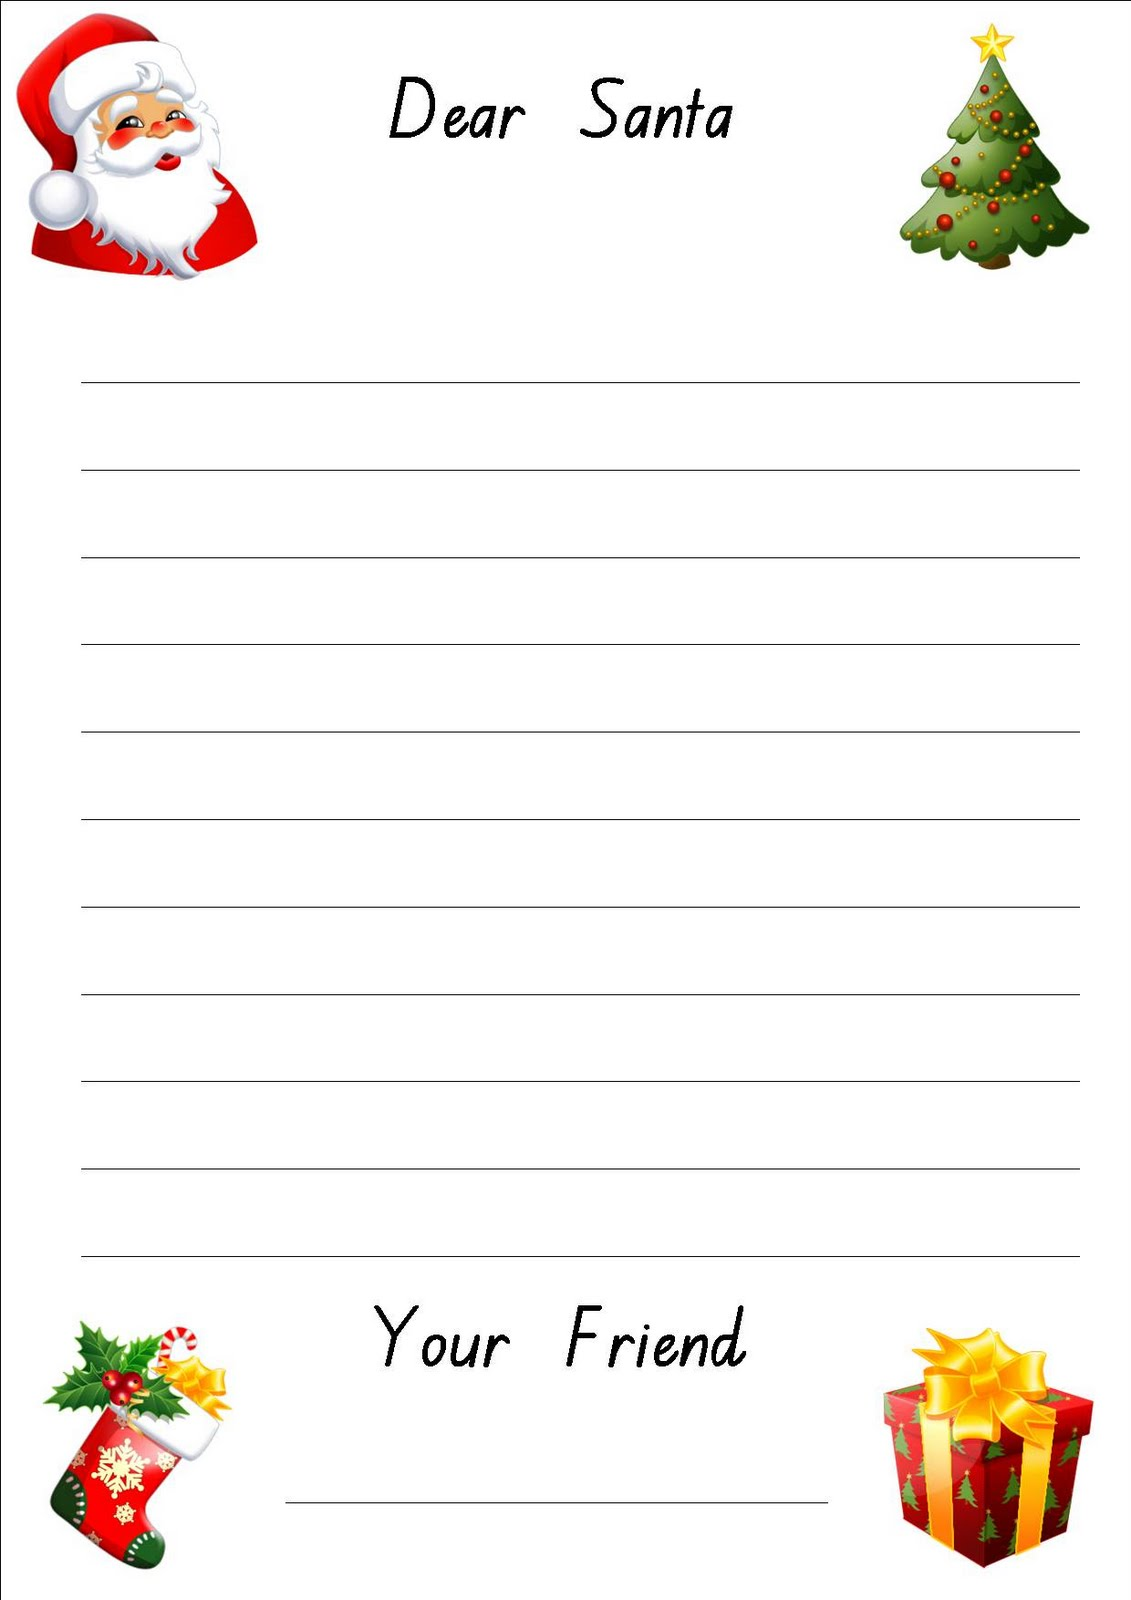 image regarding Printable Letters From Santa called No cost Printable: Letter Toward Santa Paper